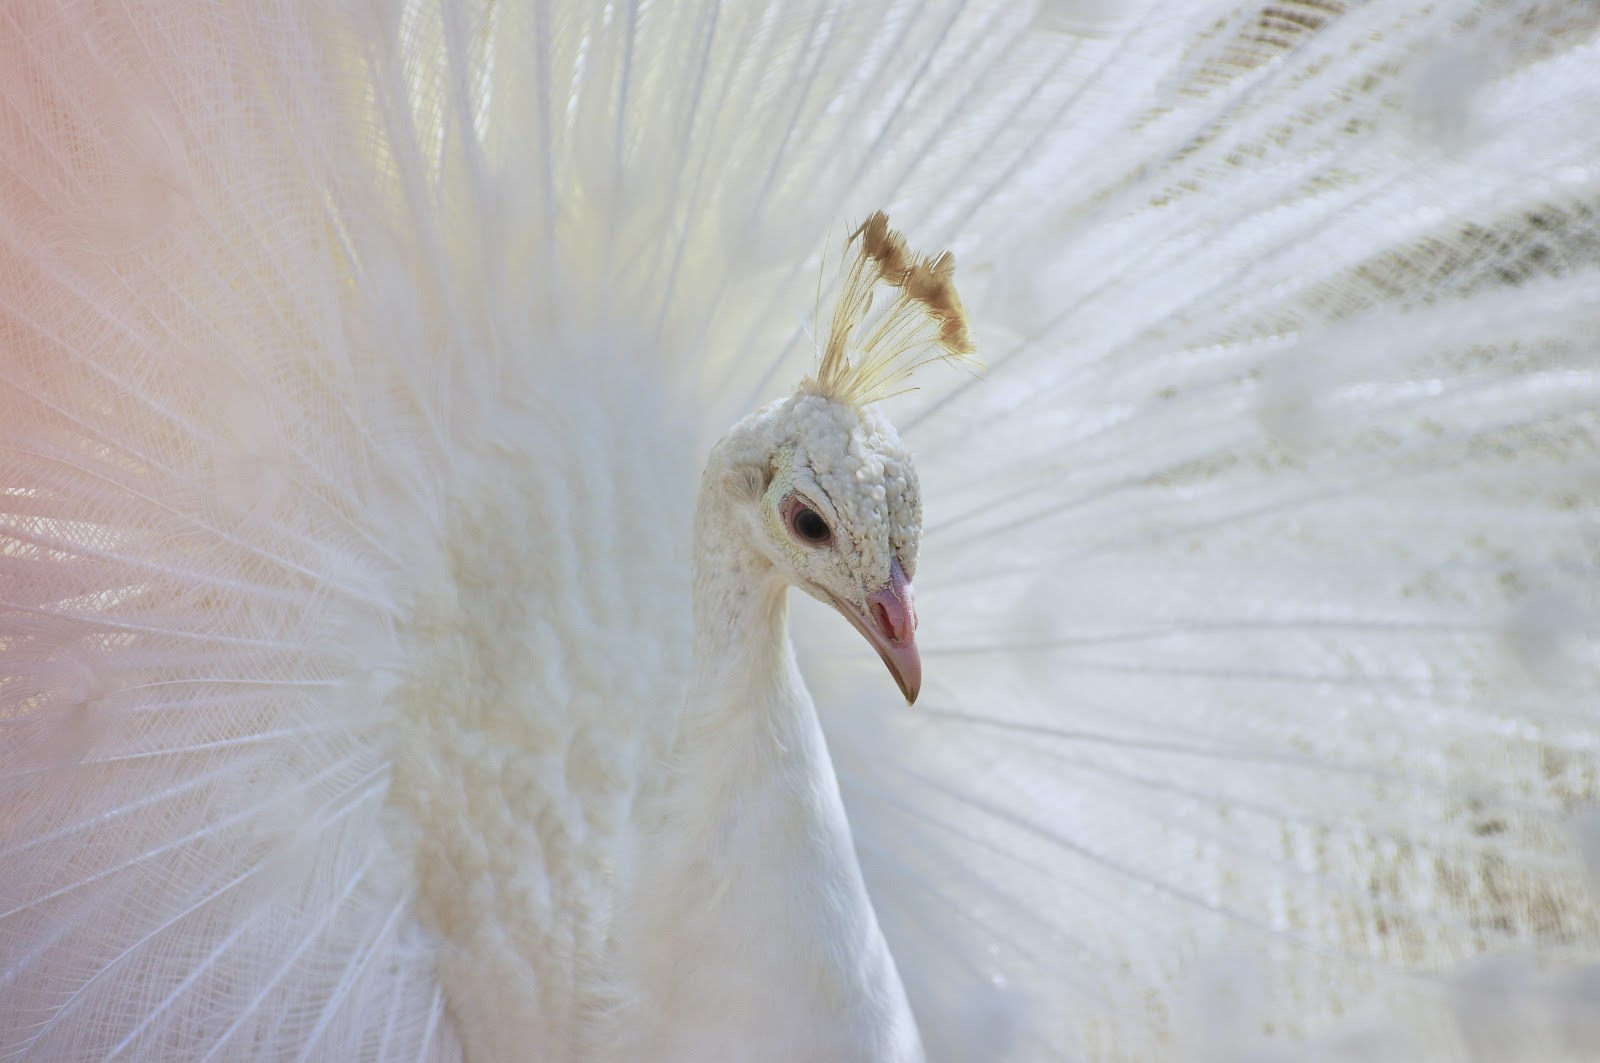 white-peacock-close-up-images